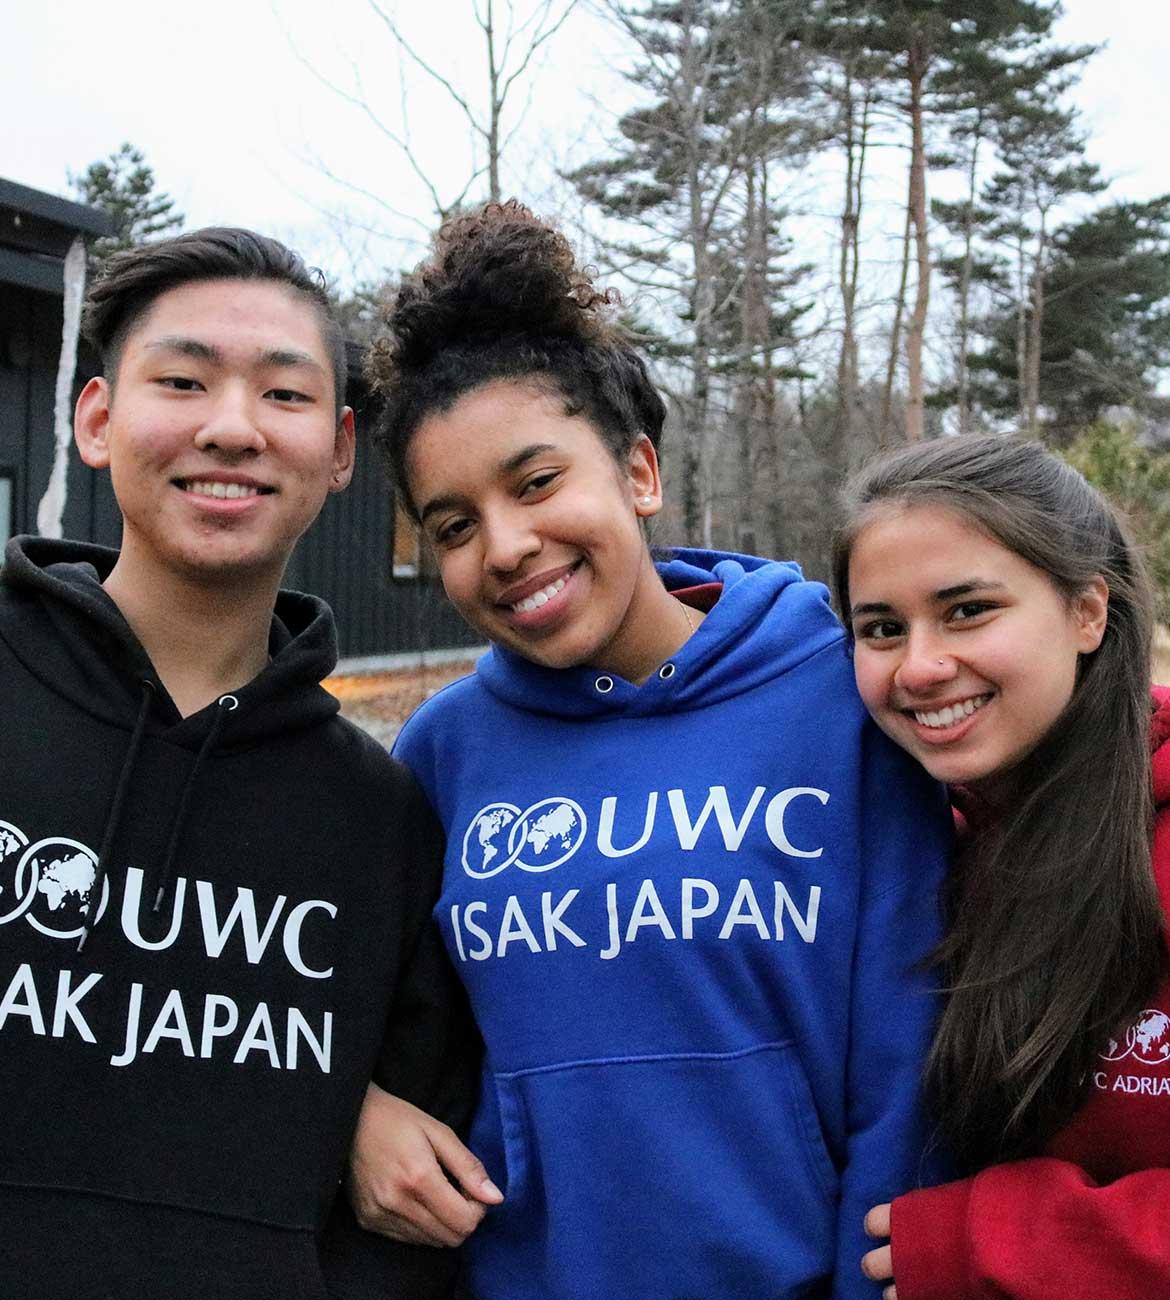 uwc-isak-about-us-who-we-are-1